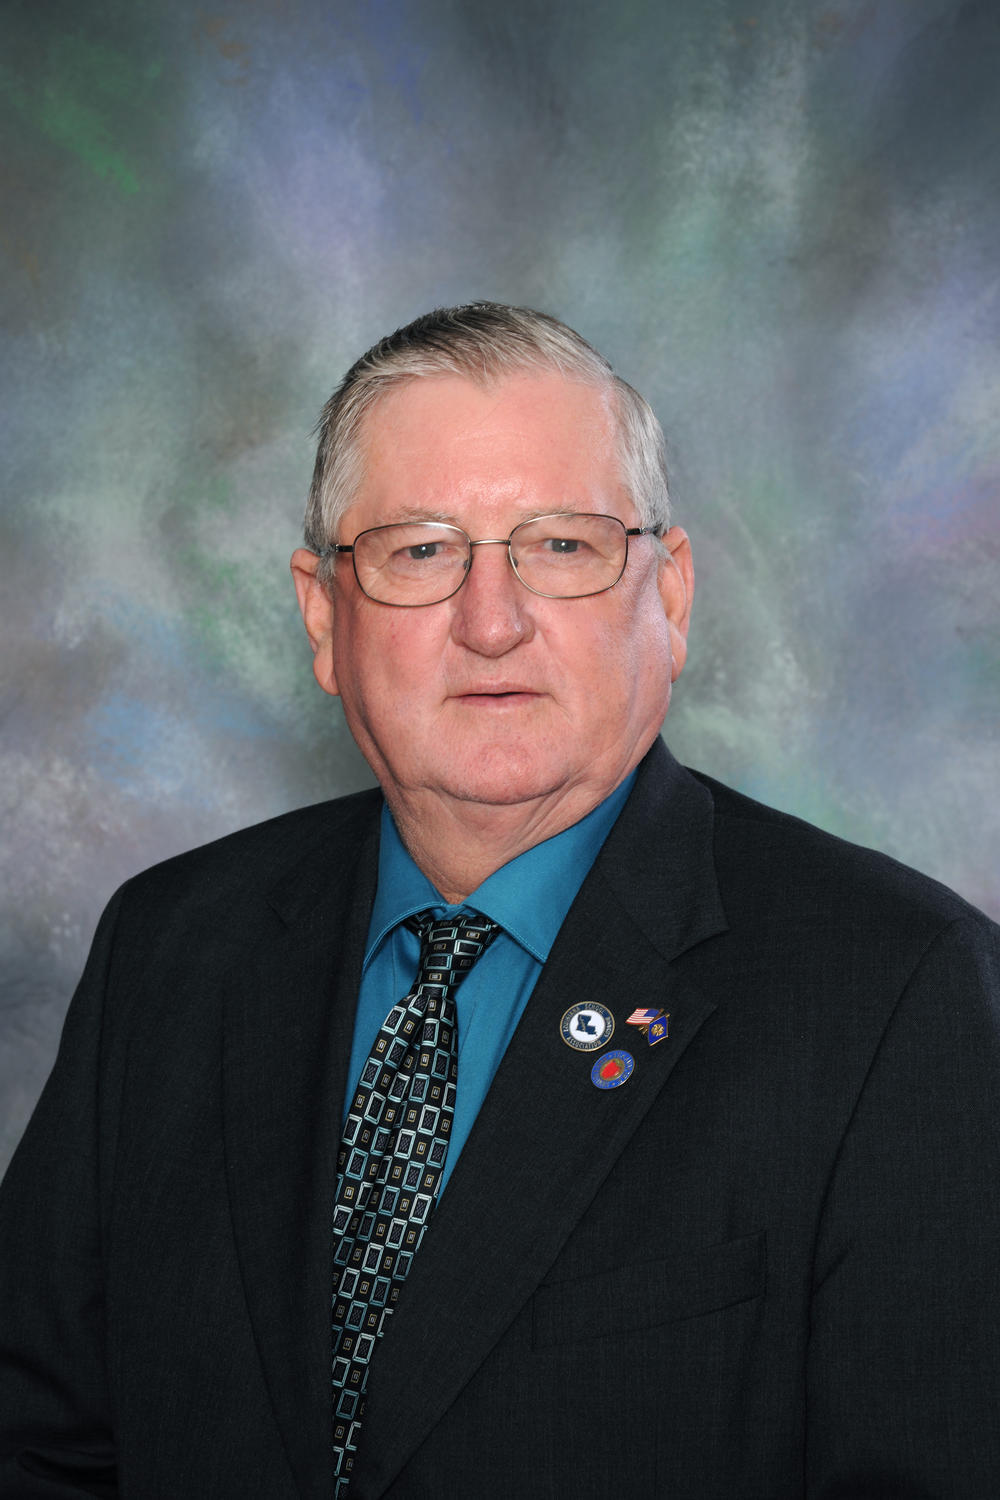 Roger Dale DeHart - District 7